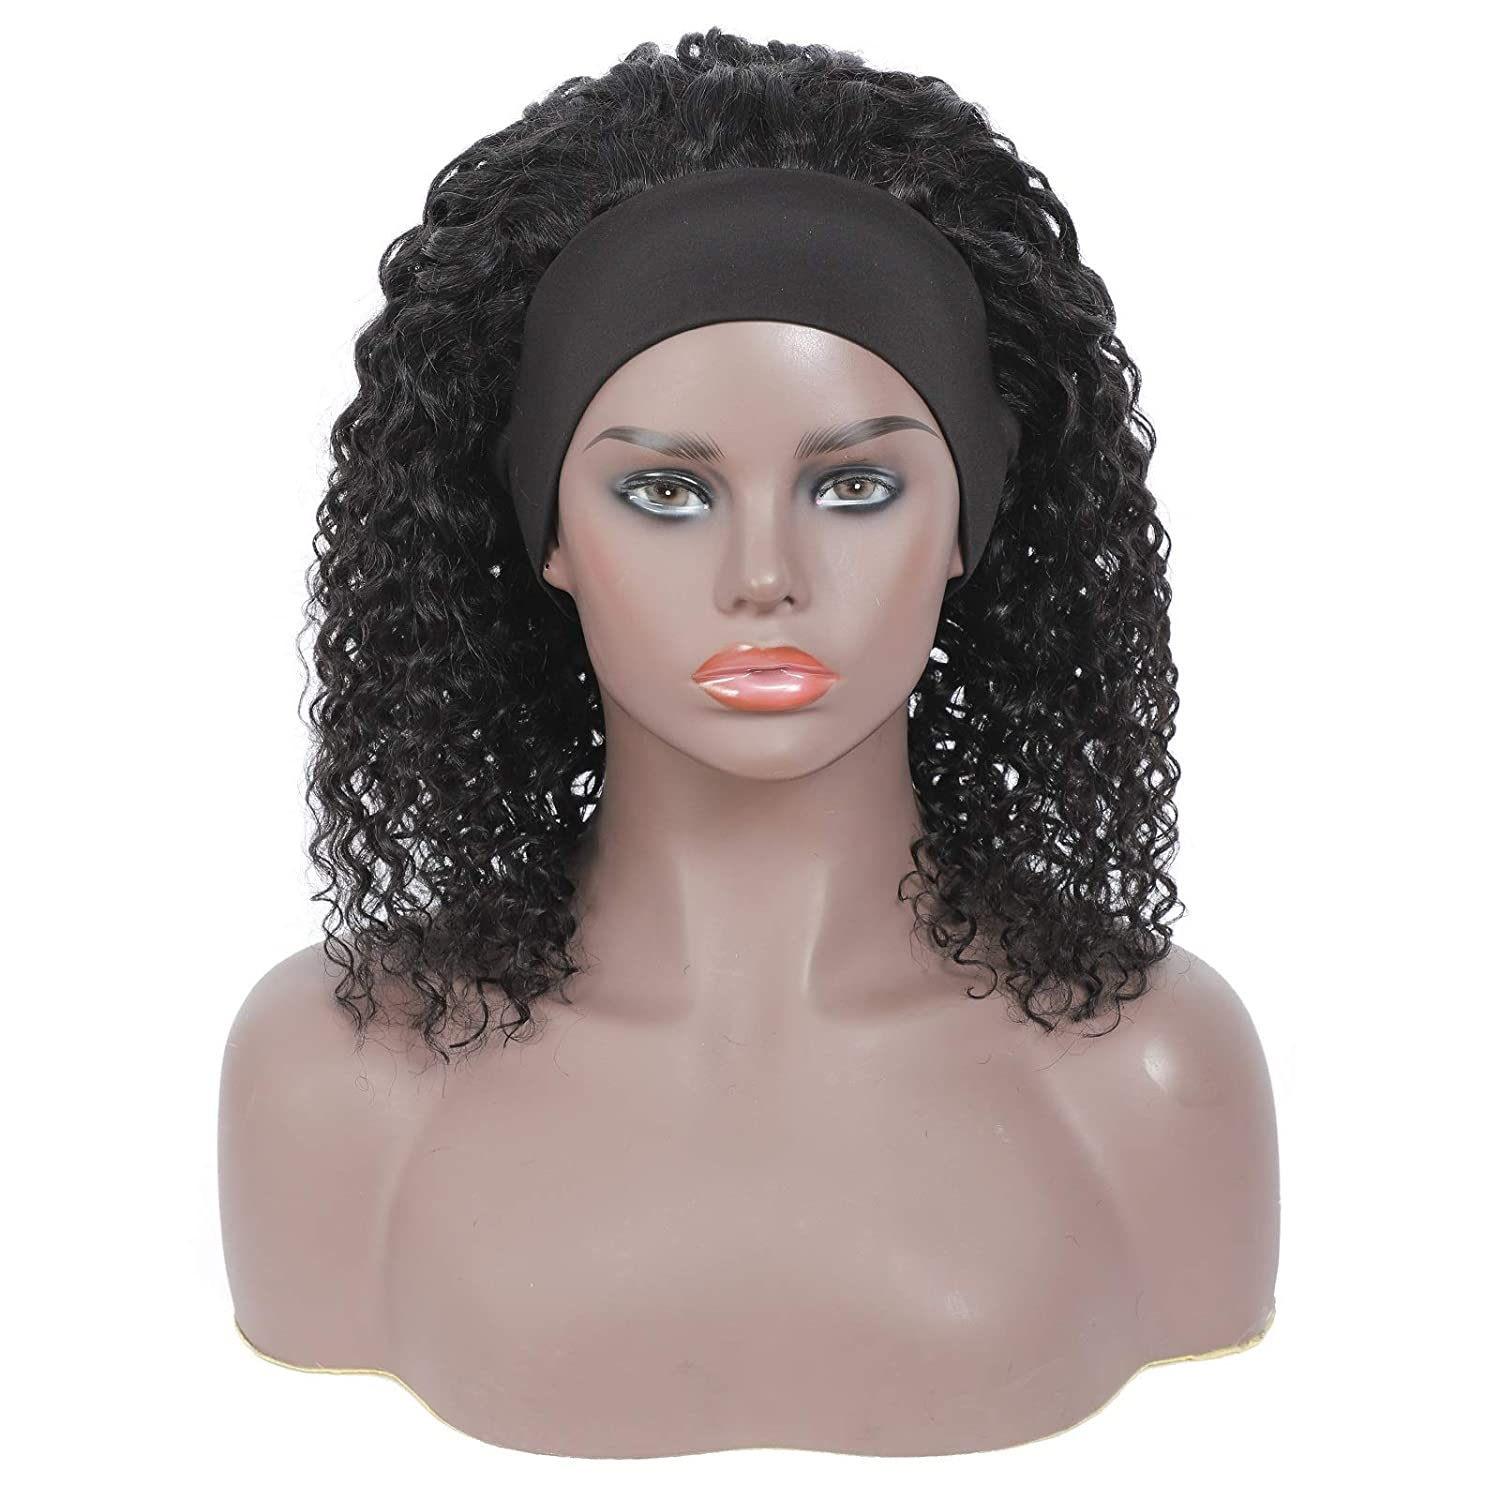 Headband Wig Kinky Curly Wigs for Black Women None Lace Front Curly Wigs with Headband Human Hair Mixed 150% Density Machine Made Wave Natural Color 14 inch